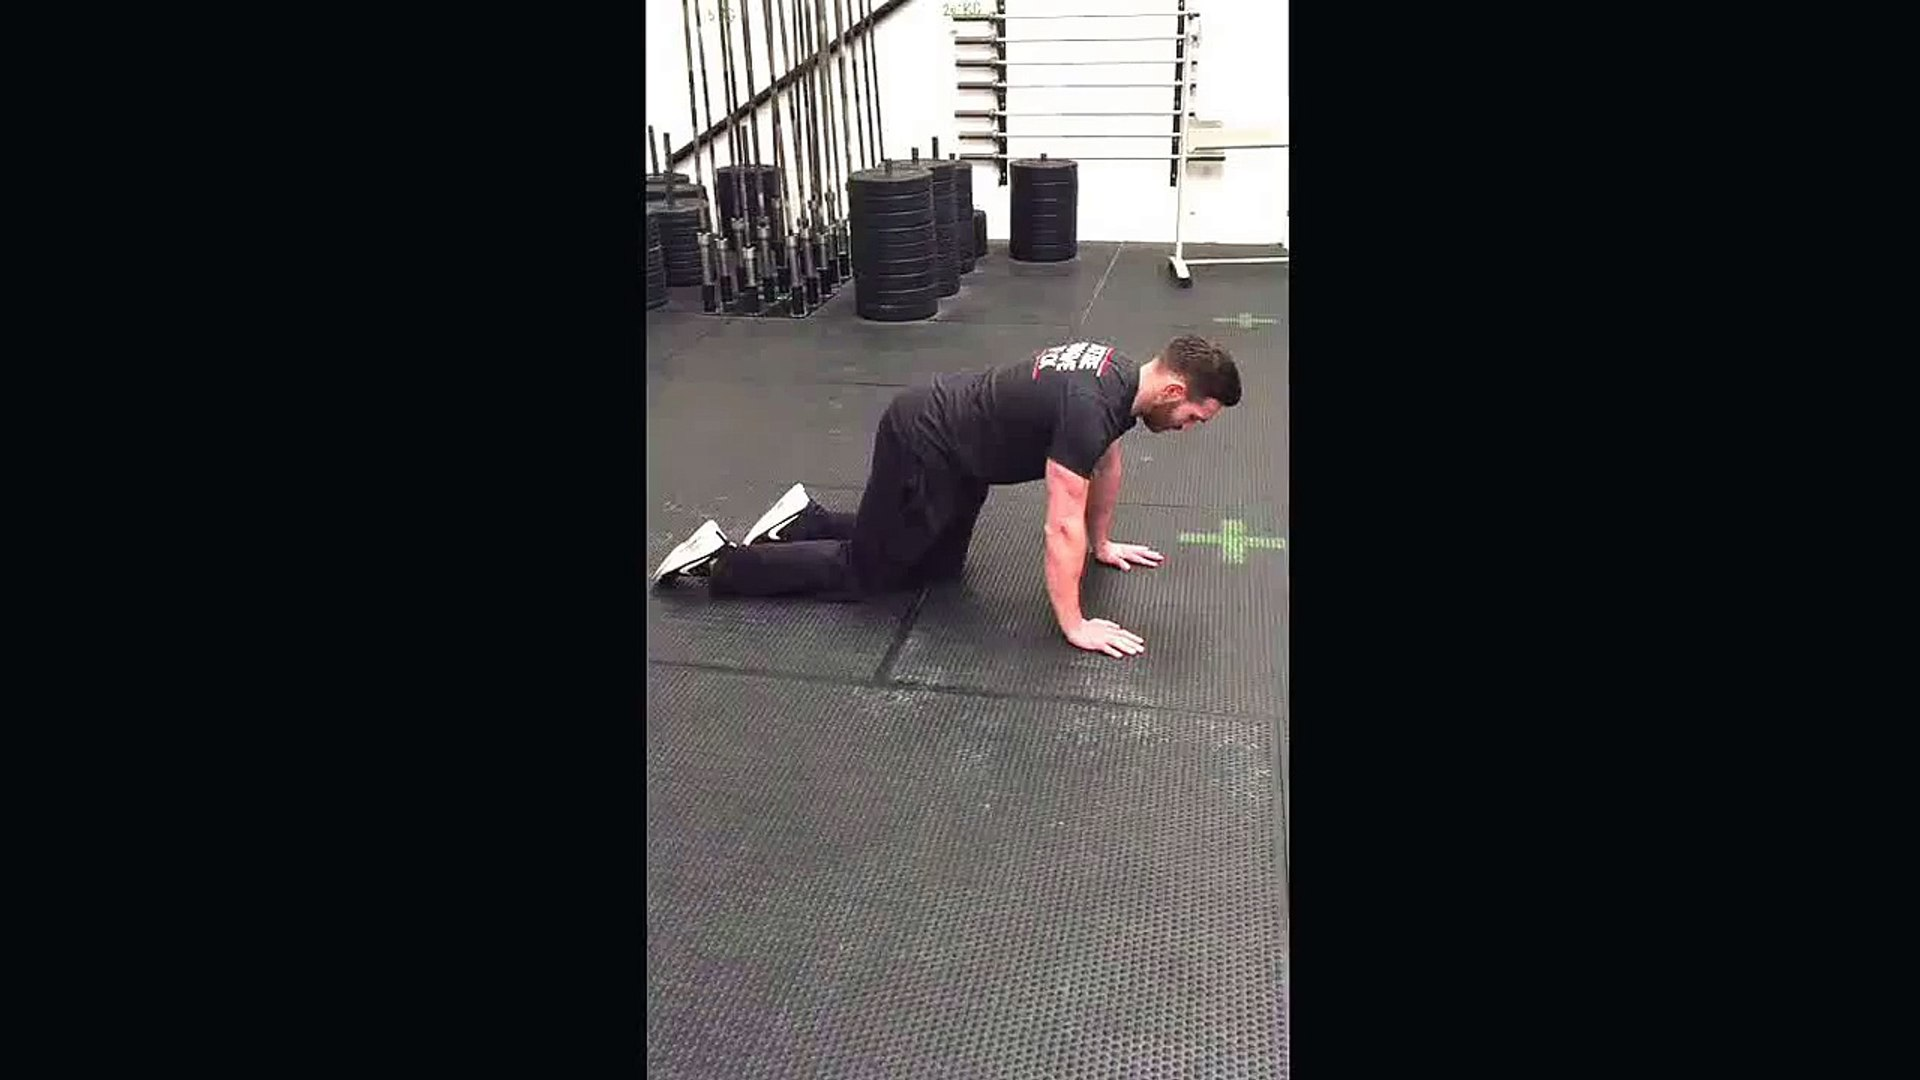 Clean Eating Challenge - Push ups (Slow eccentric, to knees, to plank )